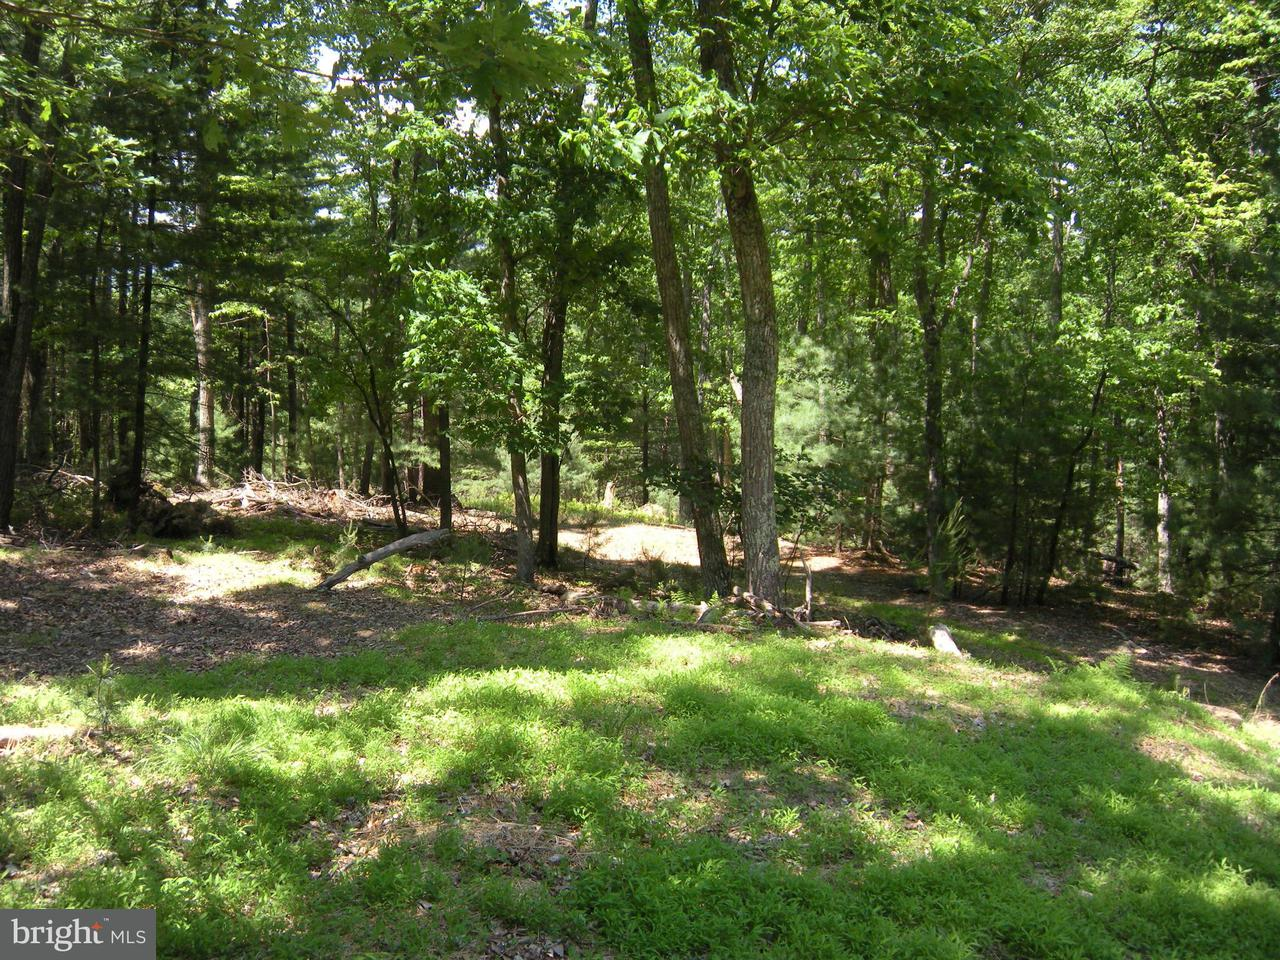 Land for Sale at Lot #101 Mossy Oaks Rd Yellow Spring, West Virginia 26865 United States